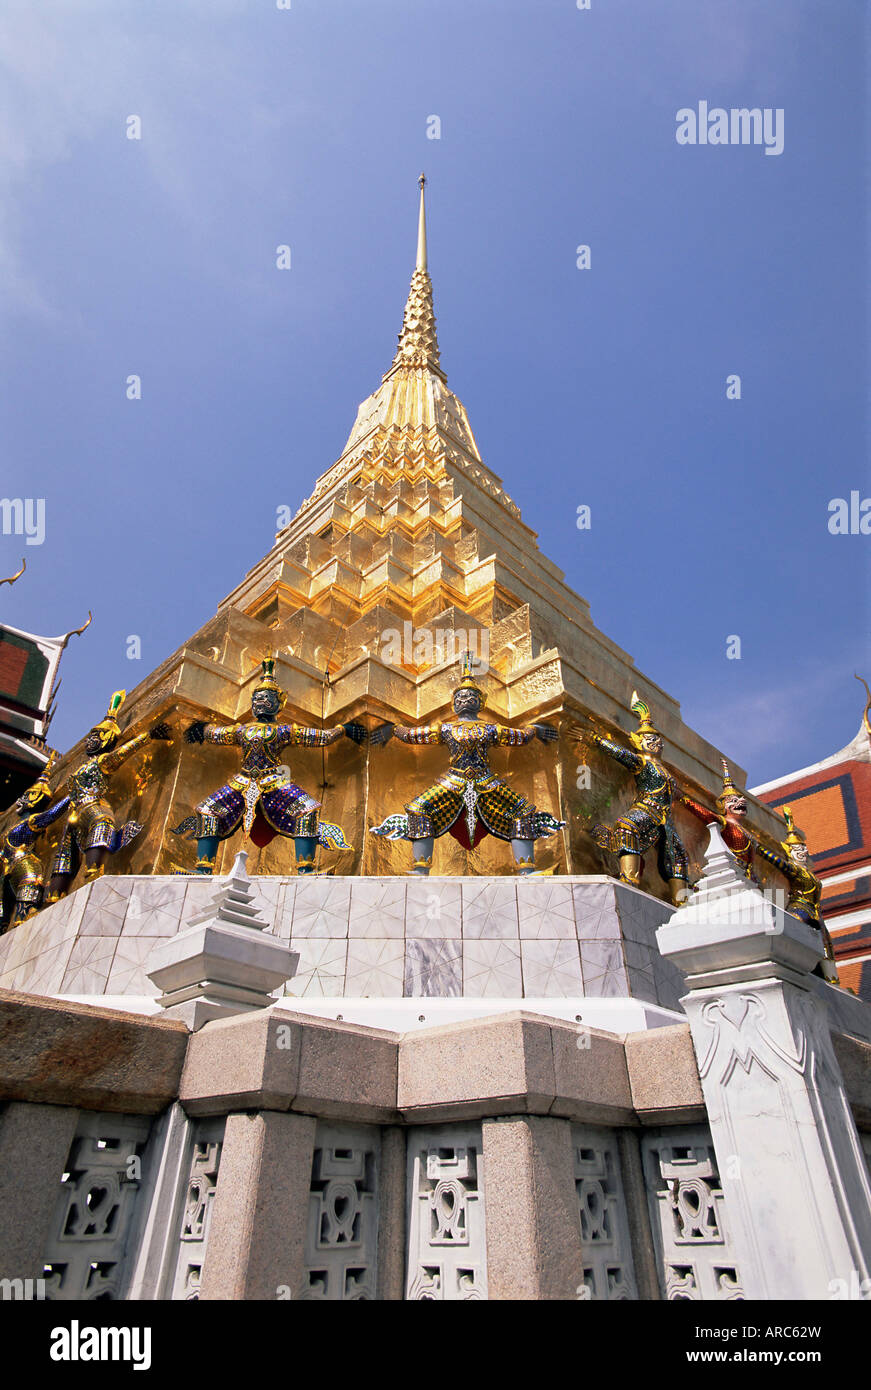 Golden spire, Temple of the Emerald Buddha (Wat Phra Kaew) in the Grand Palace, Bangkok, Thailand, Southeast Asia, - Stock Image